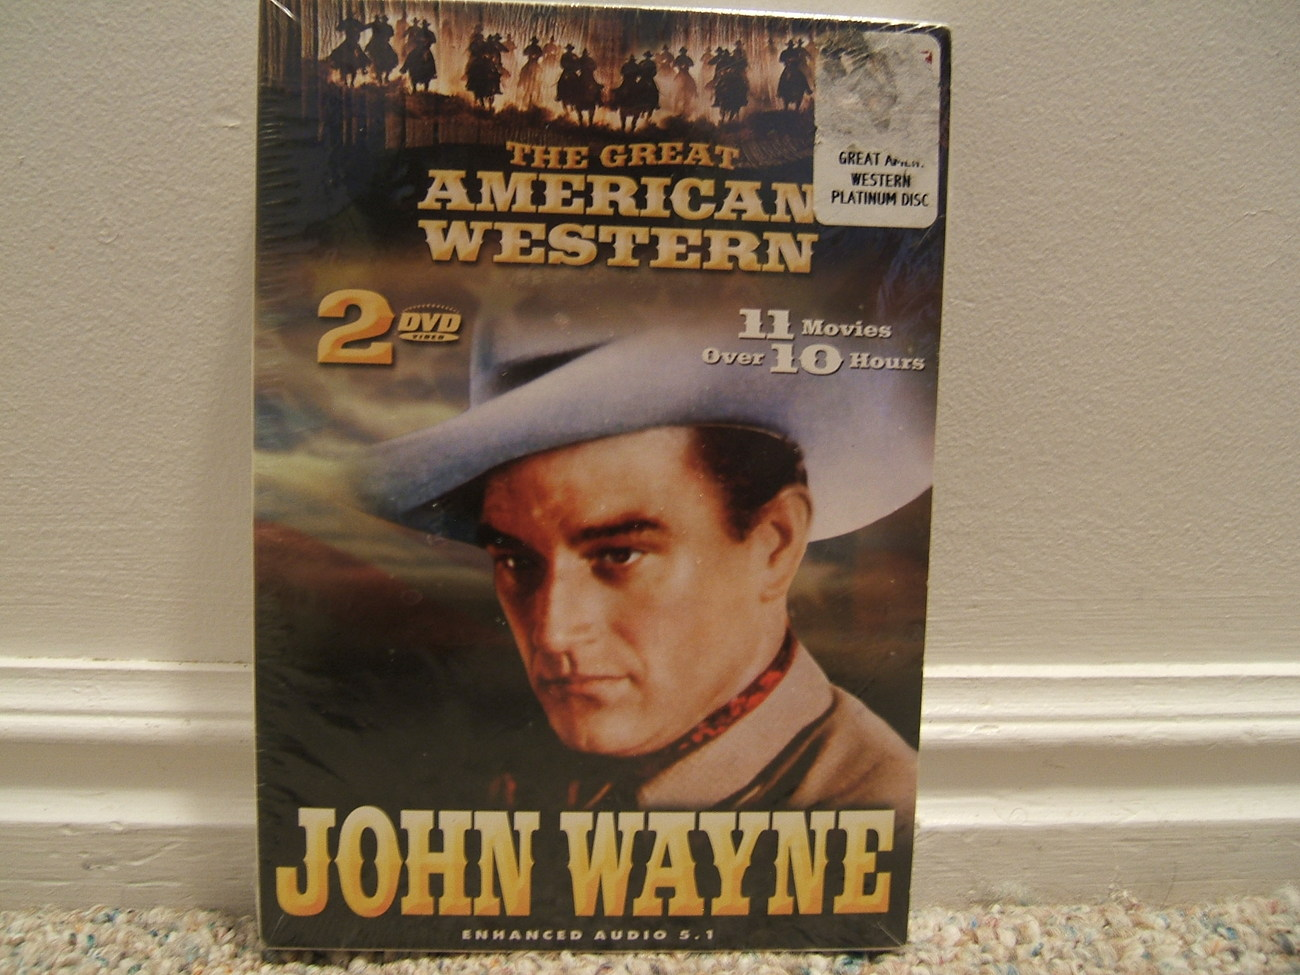 NIP-GREAT AMERICAN WESTERN 2 DVDs 11 JOHN WAYNE MOVIES